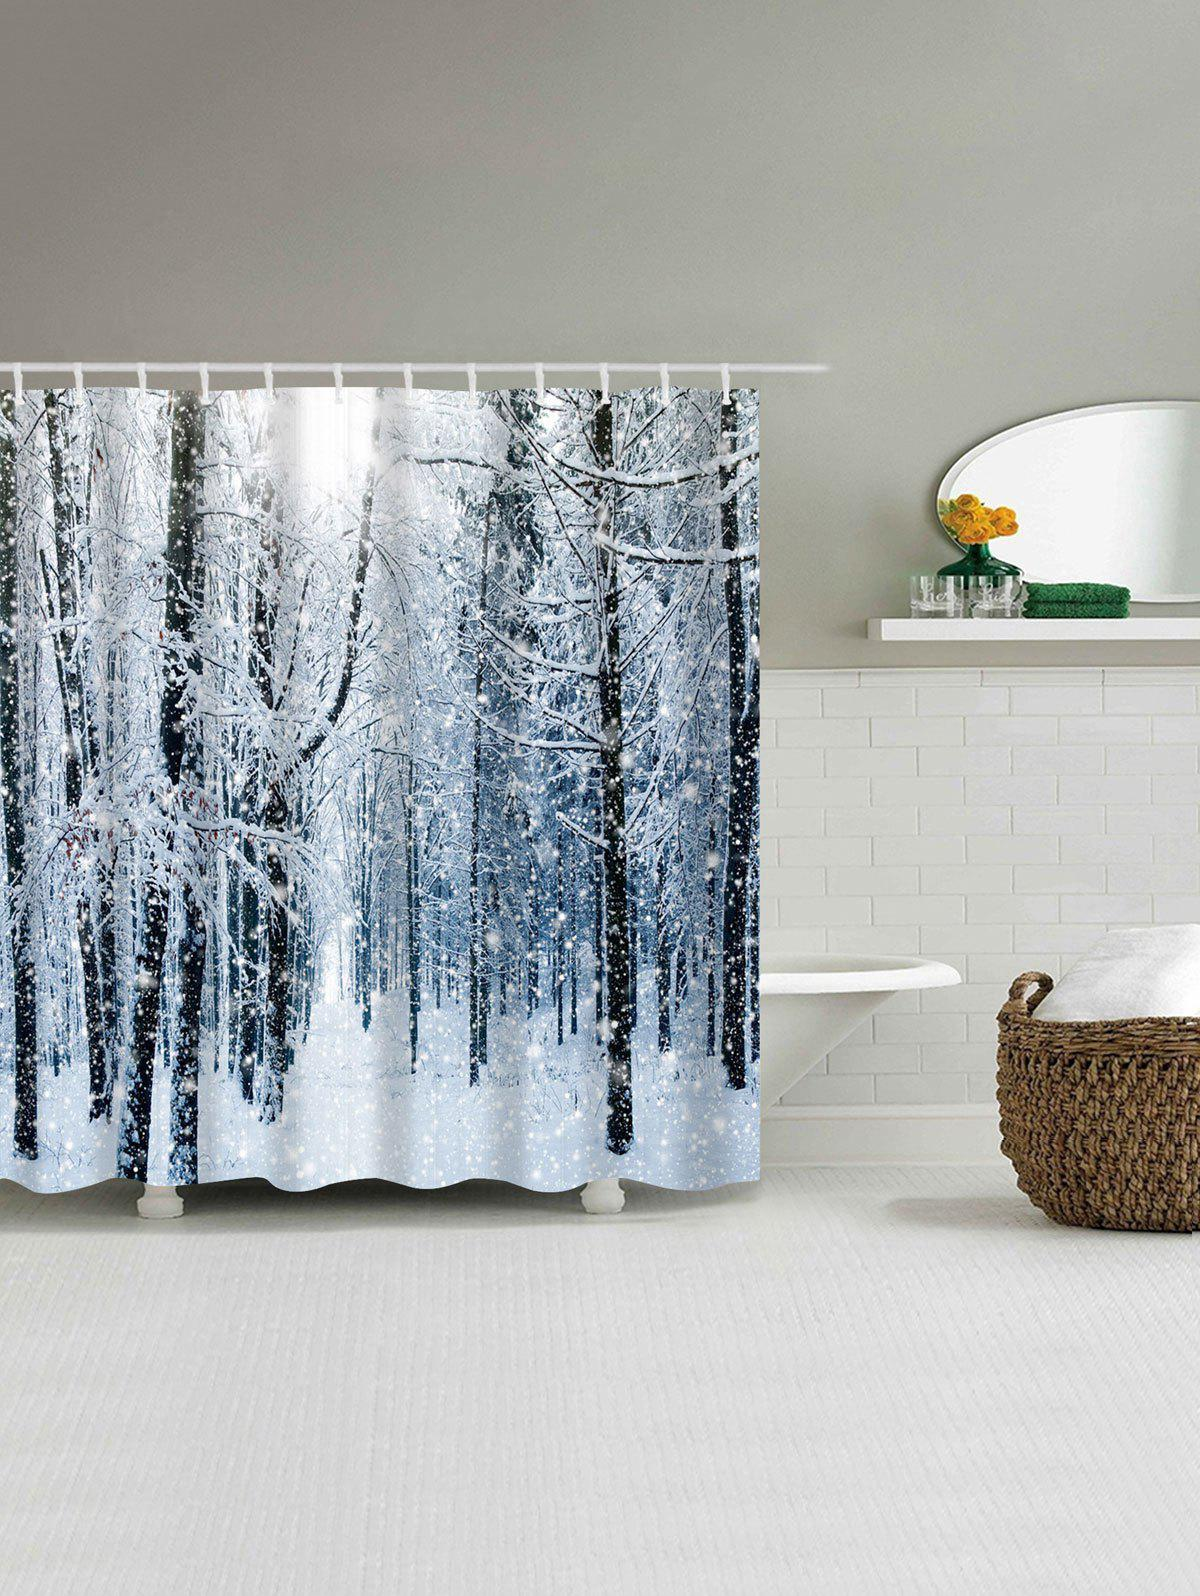 Christmas Snow Forest Print Waterproof Bath Curtain - COLORMIX W71 INCH * L79 INCH